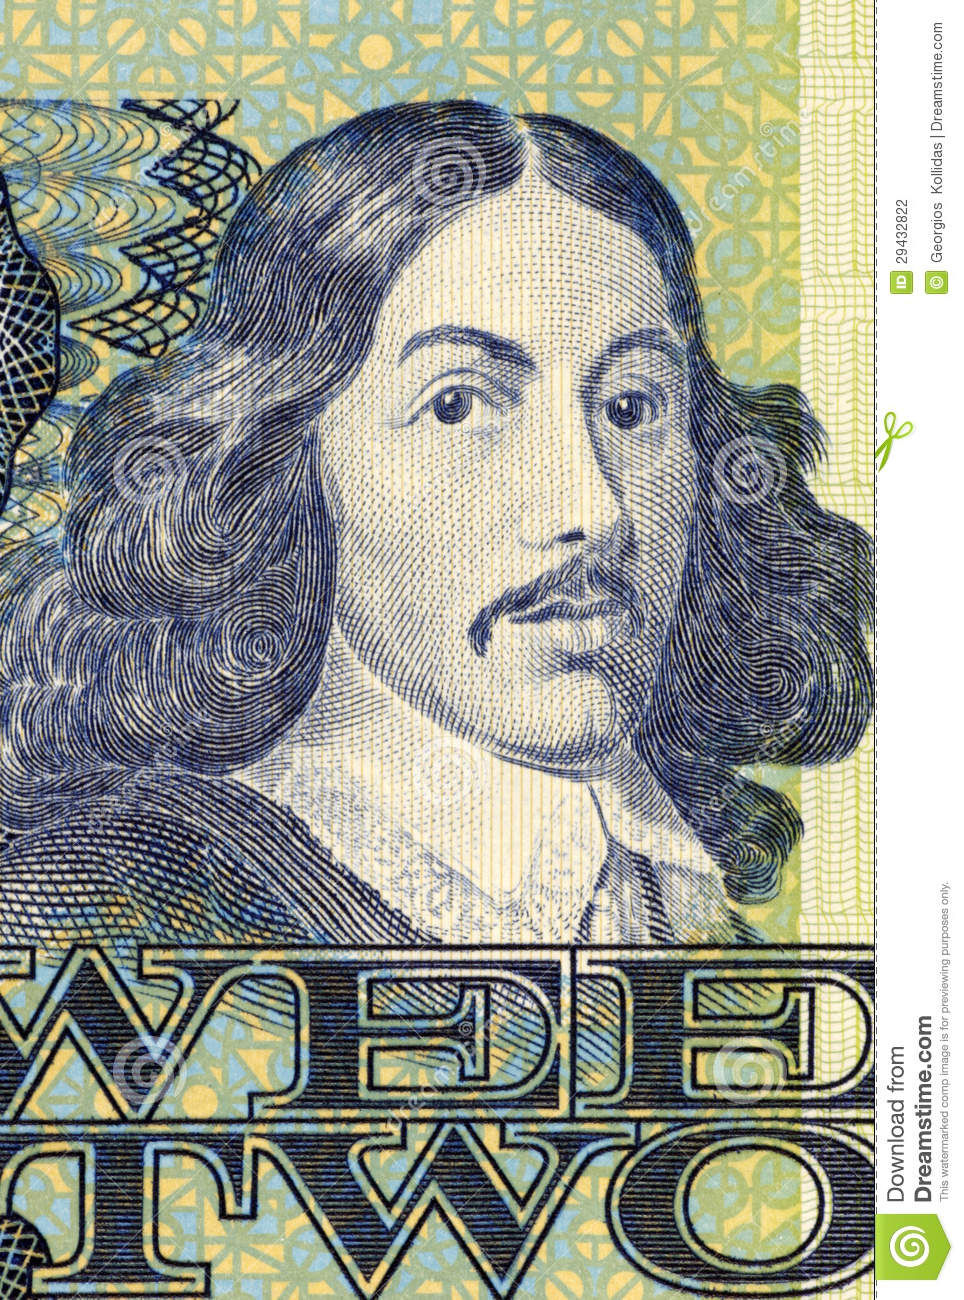 Jan van Riebeeck english